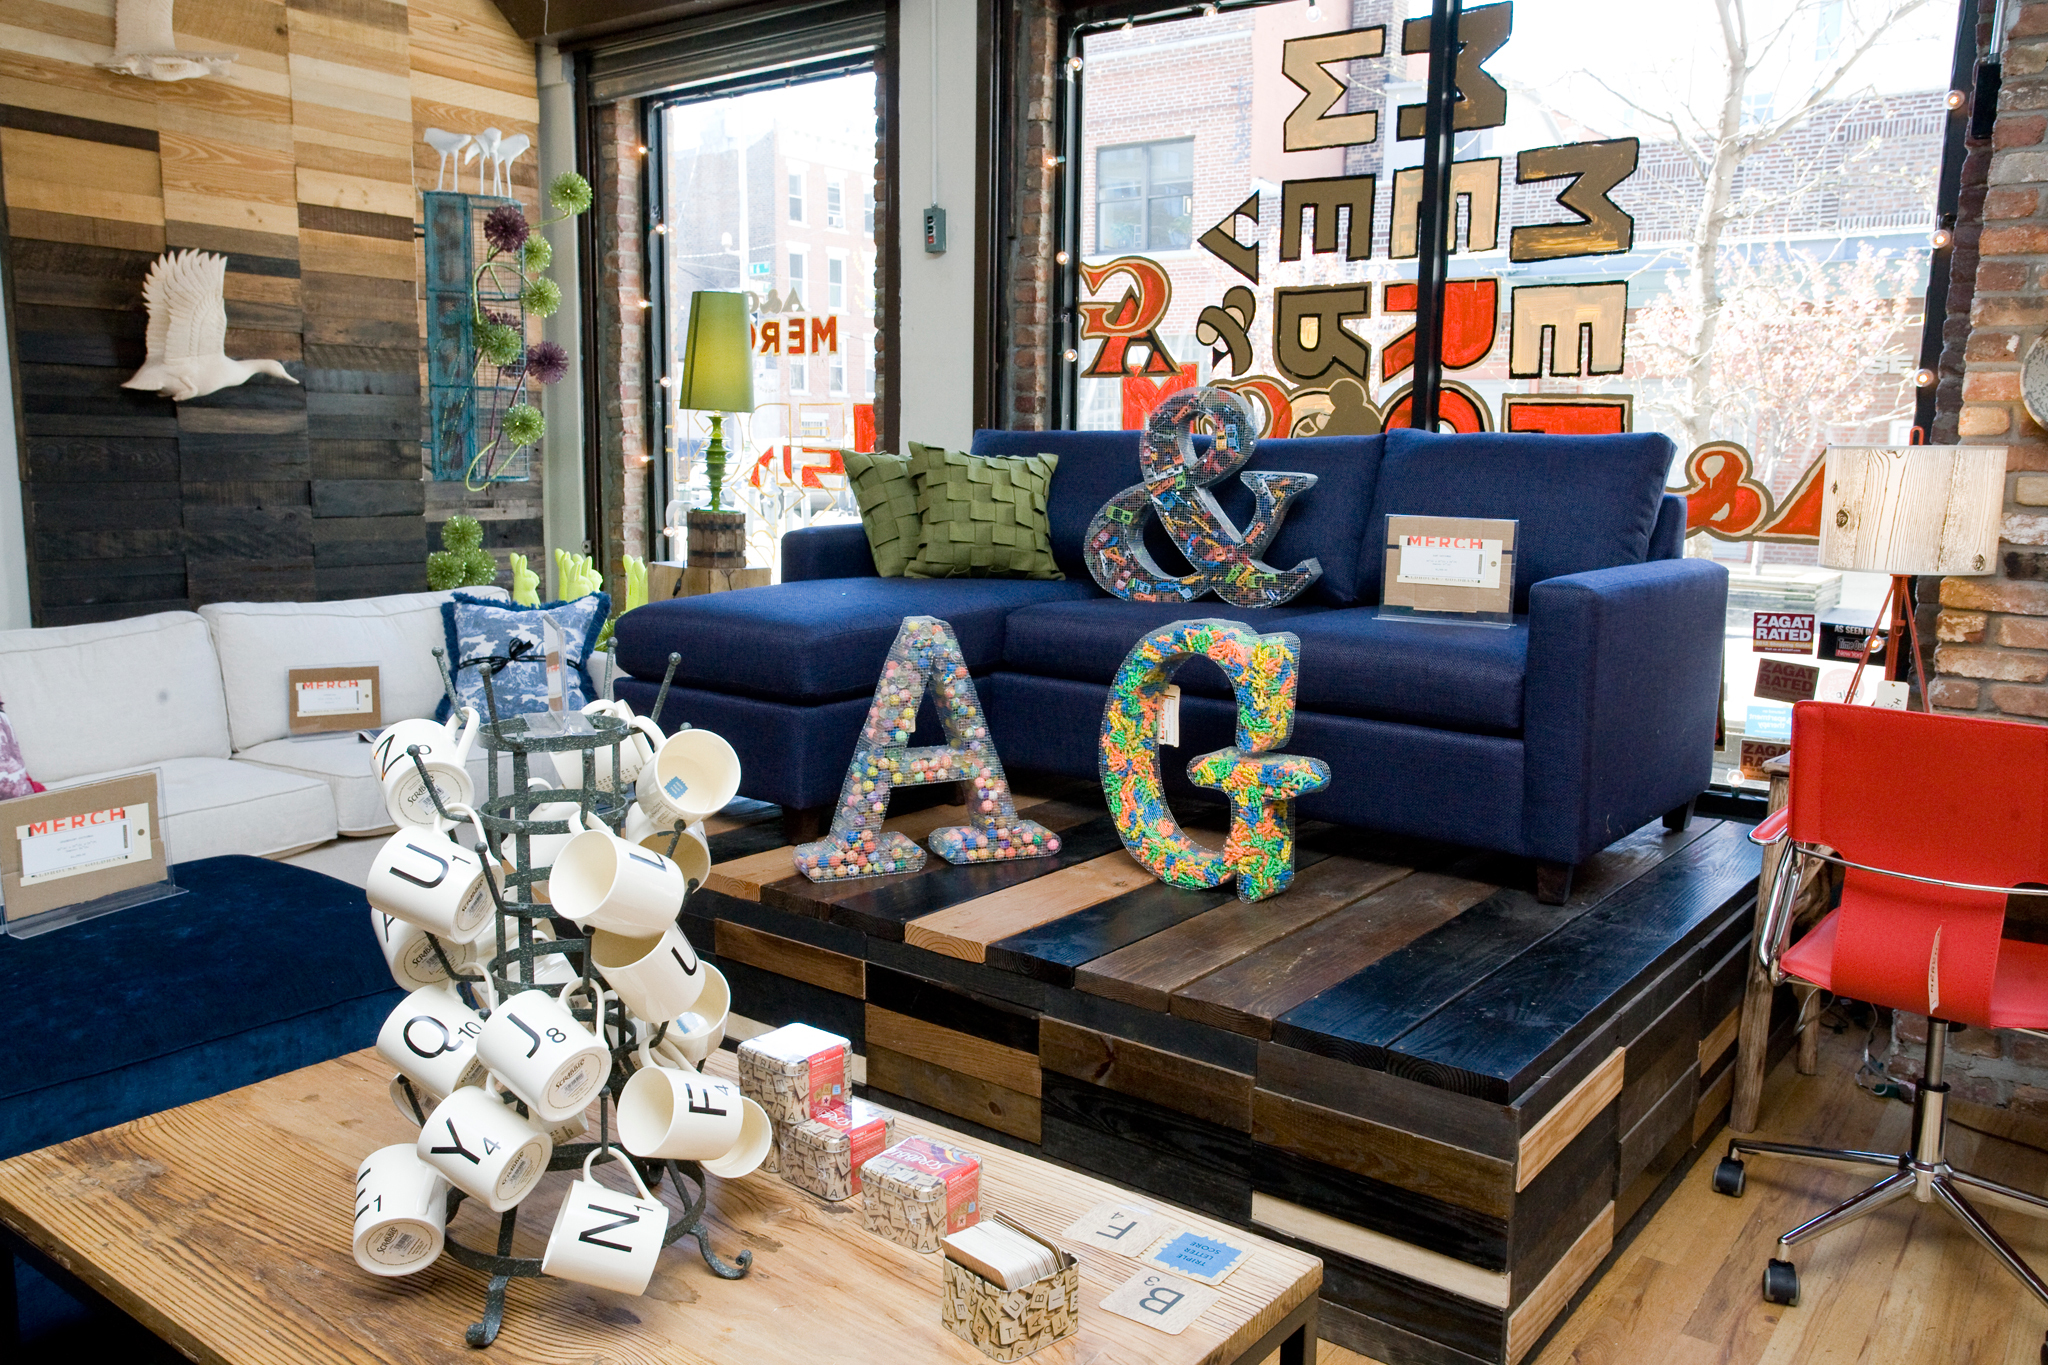 Home decor stores in nyc for decorating ideas and home Shopping for home